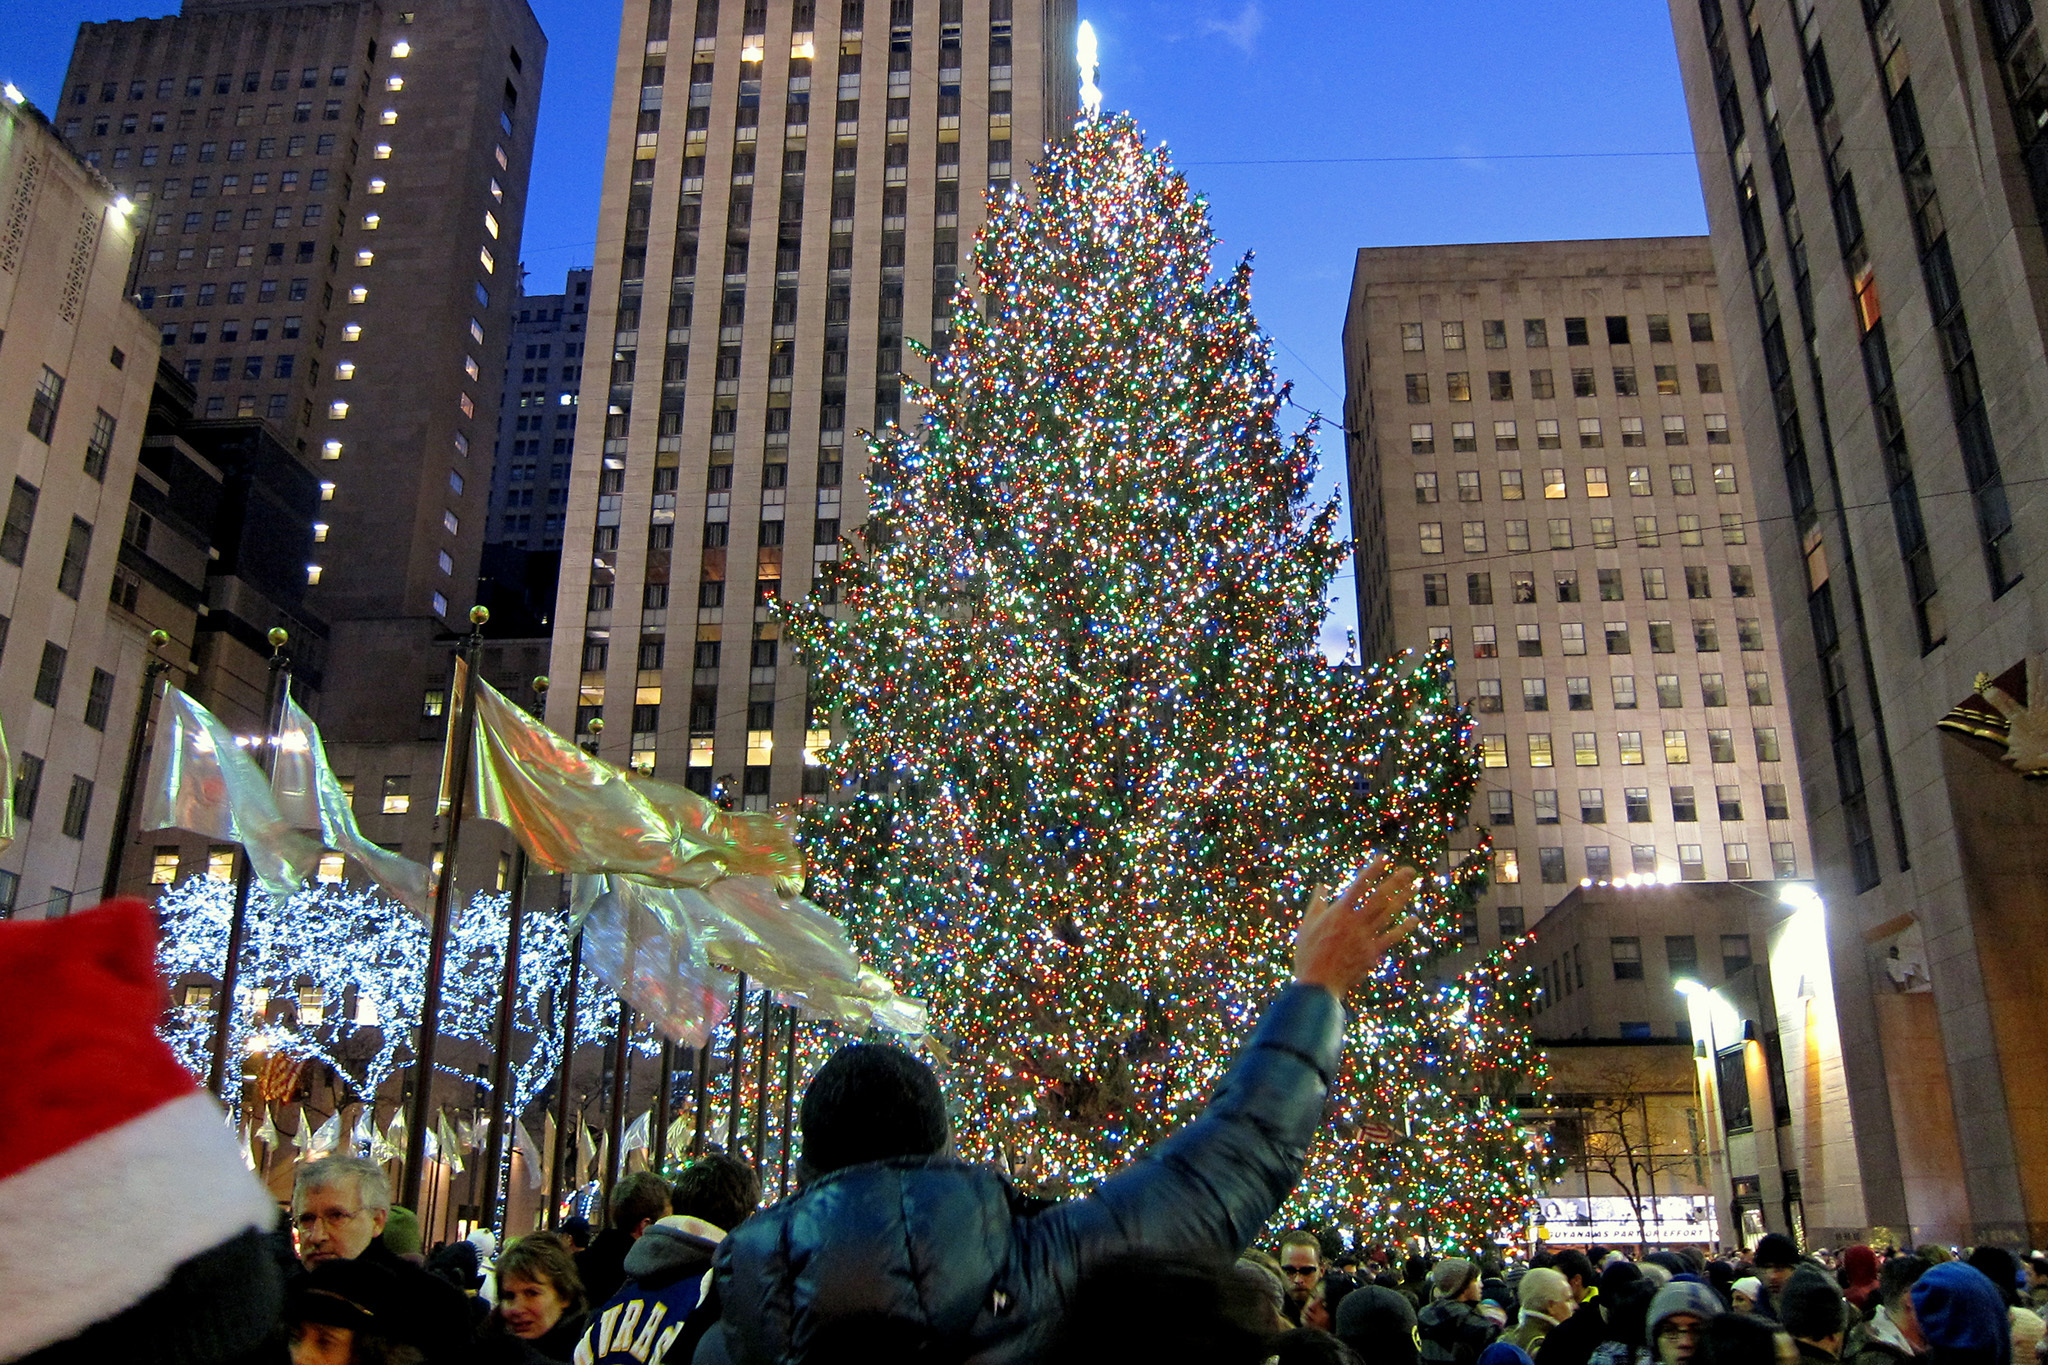 Rockefeller Christmas Tree Lighting 2019 Performers Rockefeller Center Tree Lighting 2019 In NYC With Special Guests